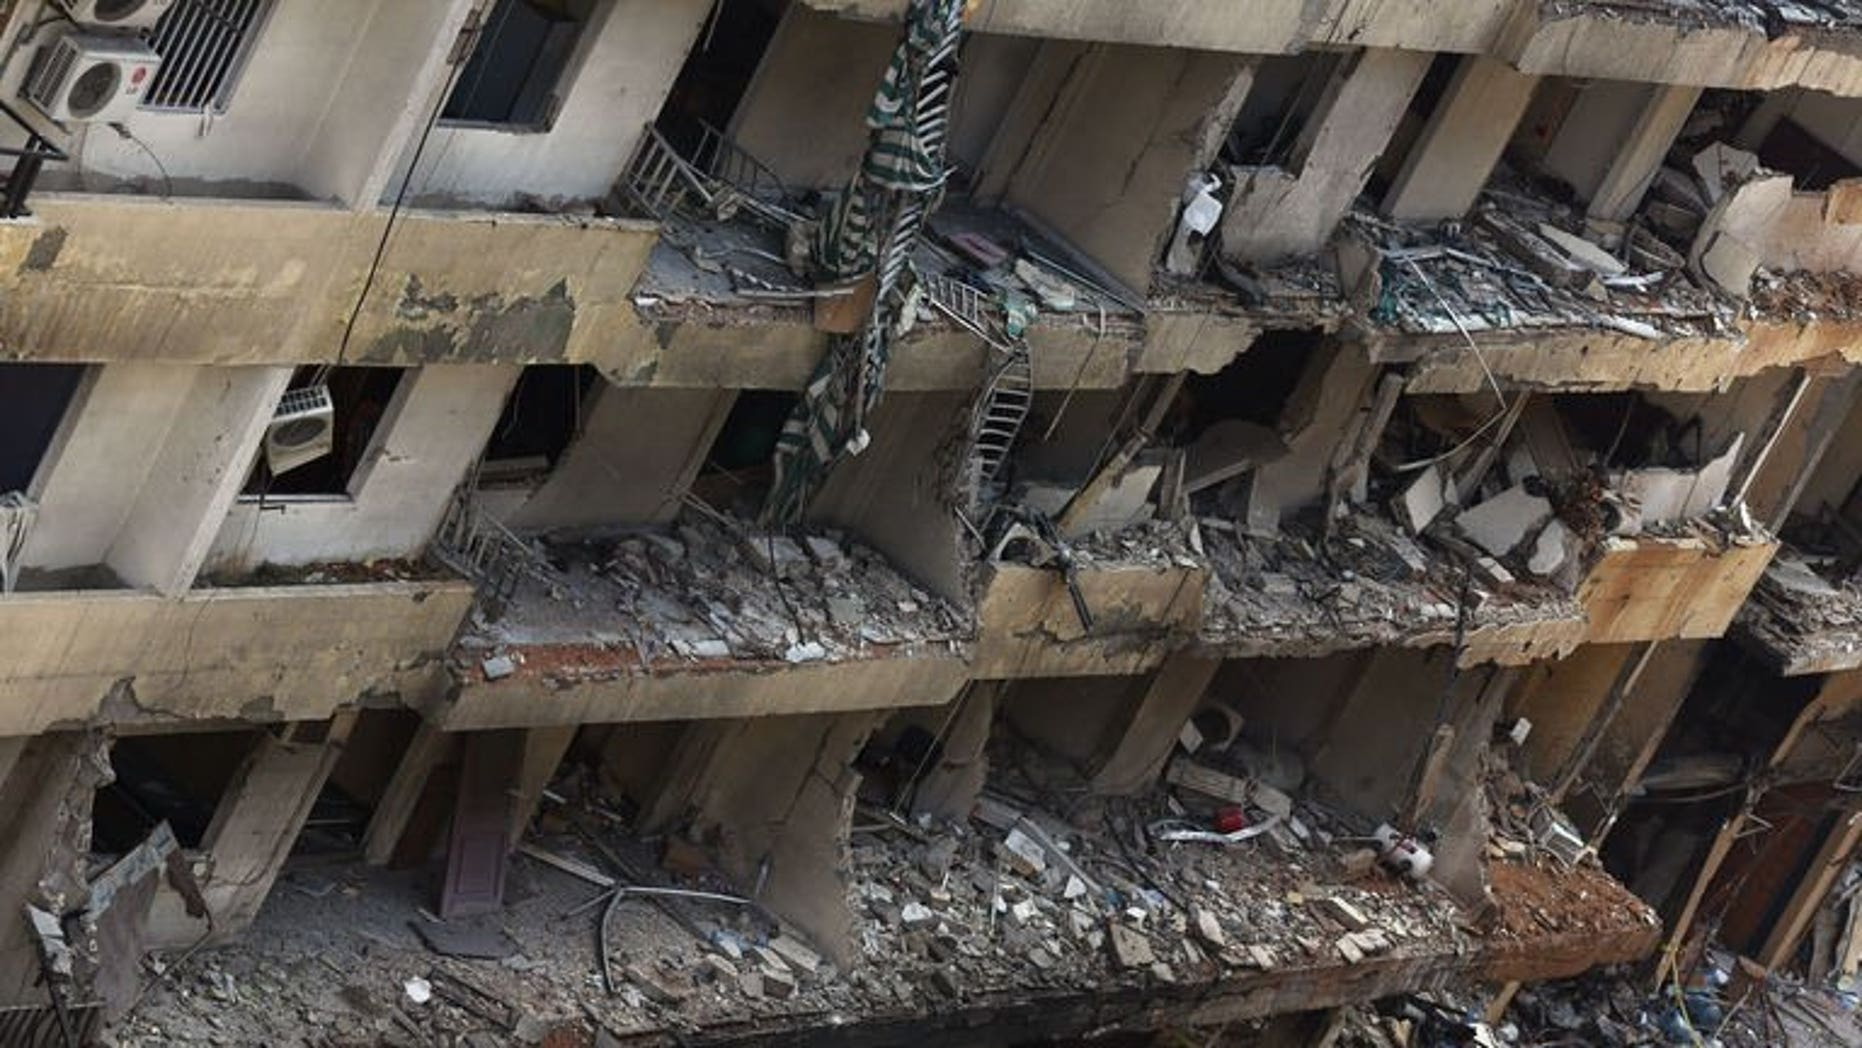 Destruction following a car bomb attack the previous day that killed at least 22 people in a Beirut stronghold of Shiite group Hezbollah on August 16, 2013. The Gulf Cooperation Council has condemned the car bombing that killed at least 22 people.